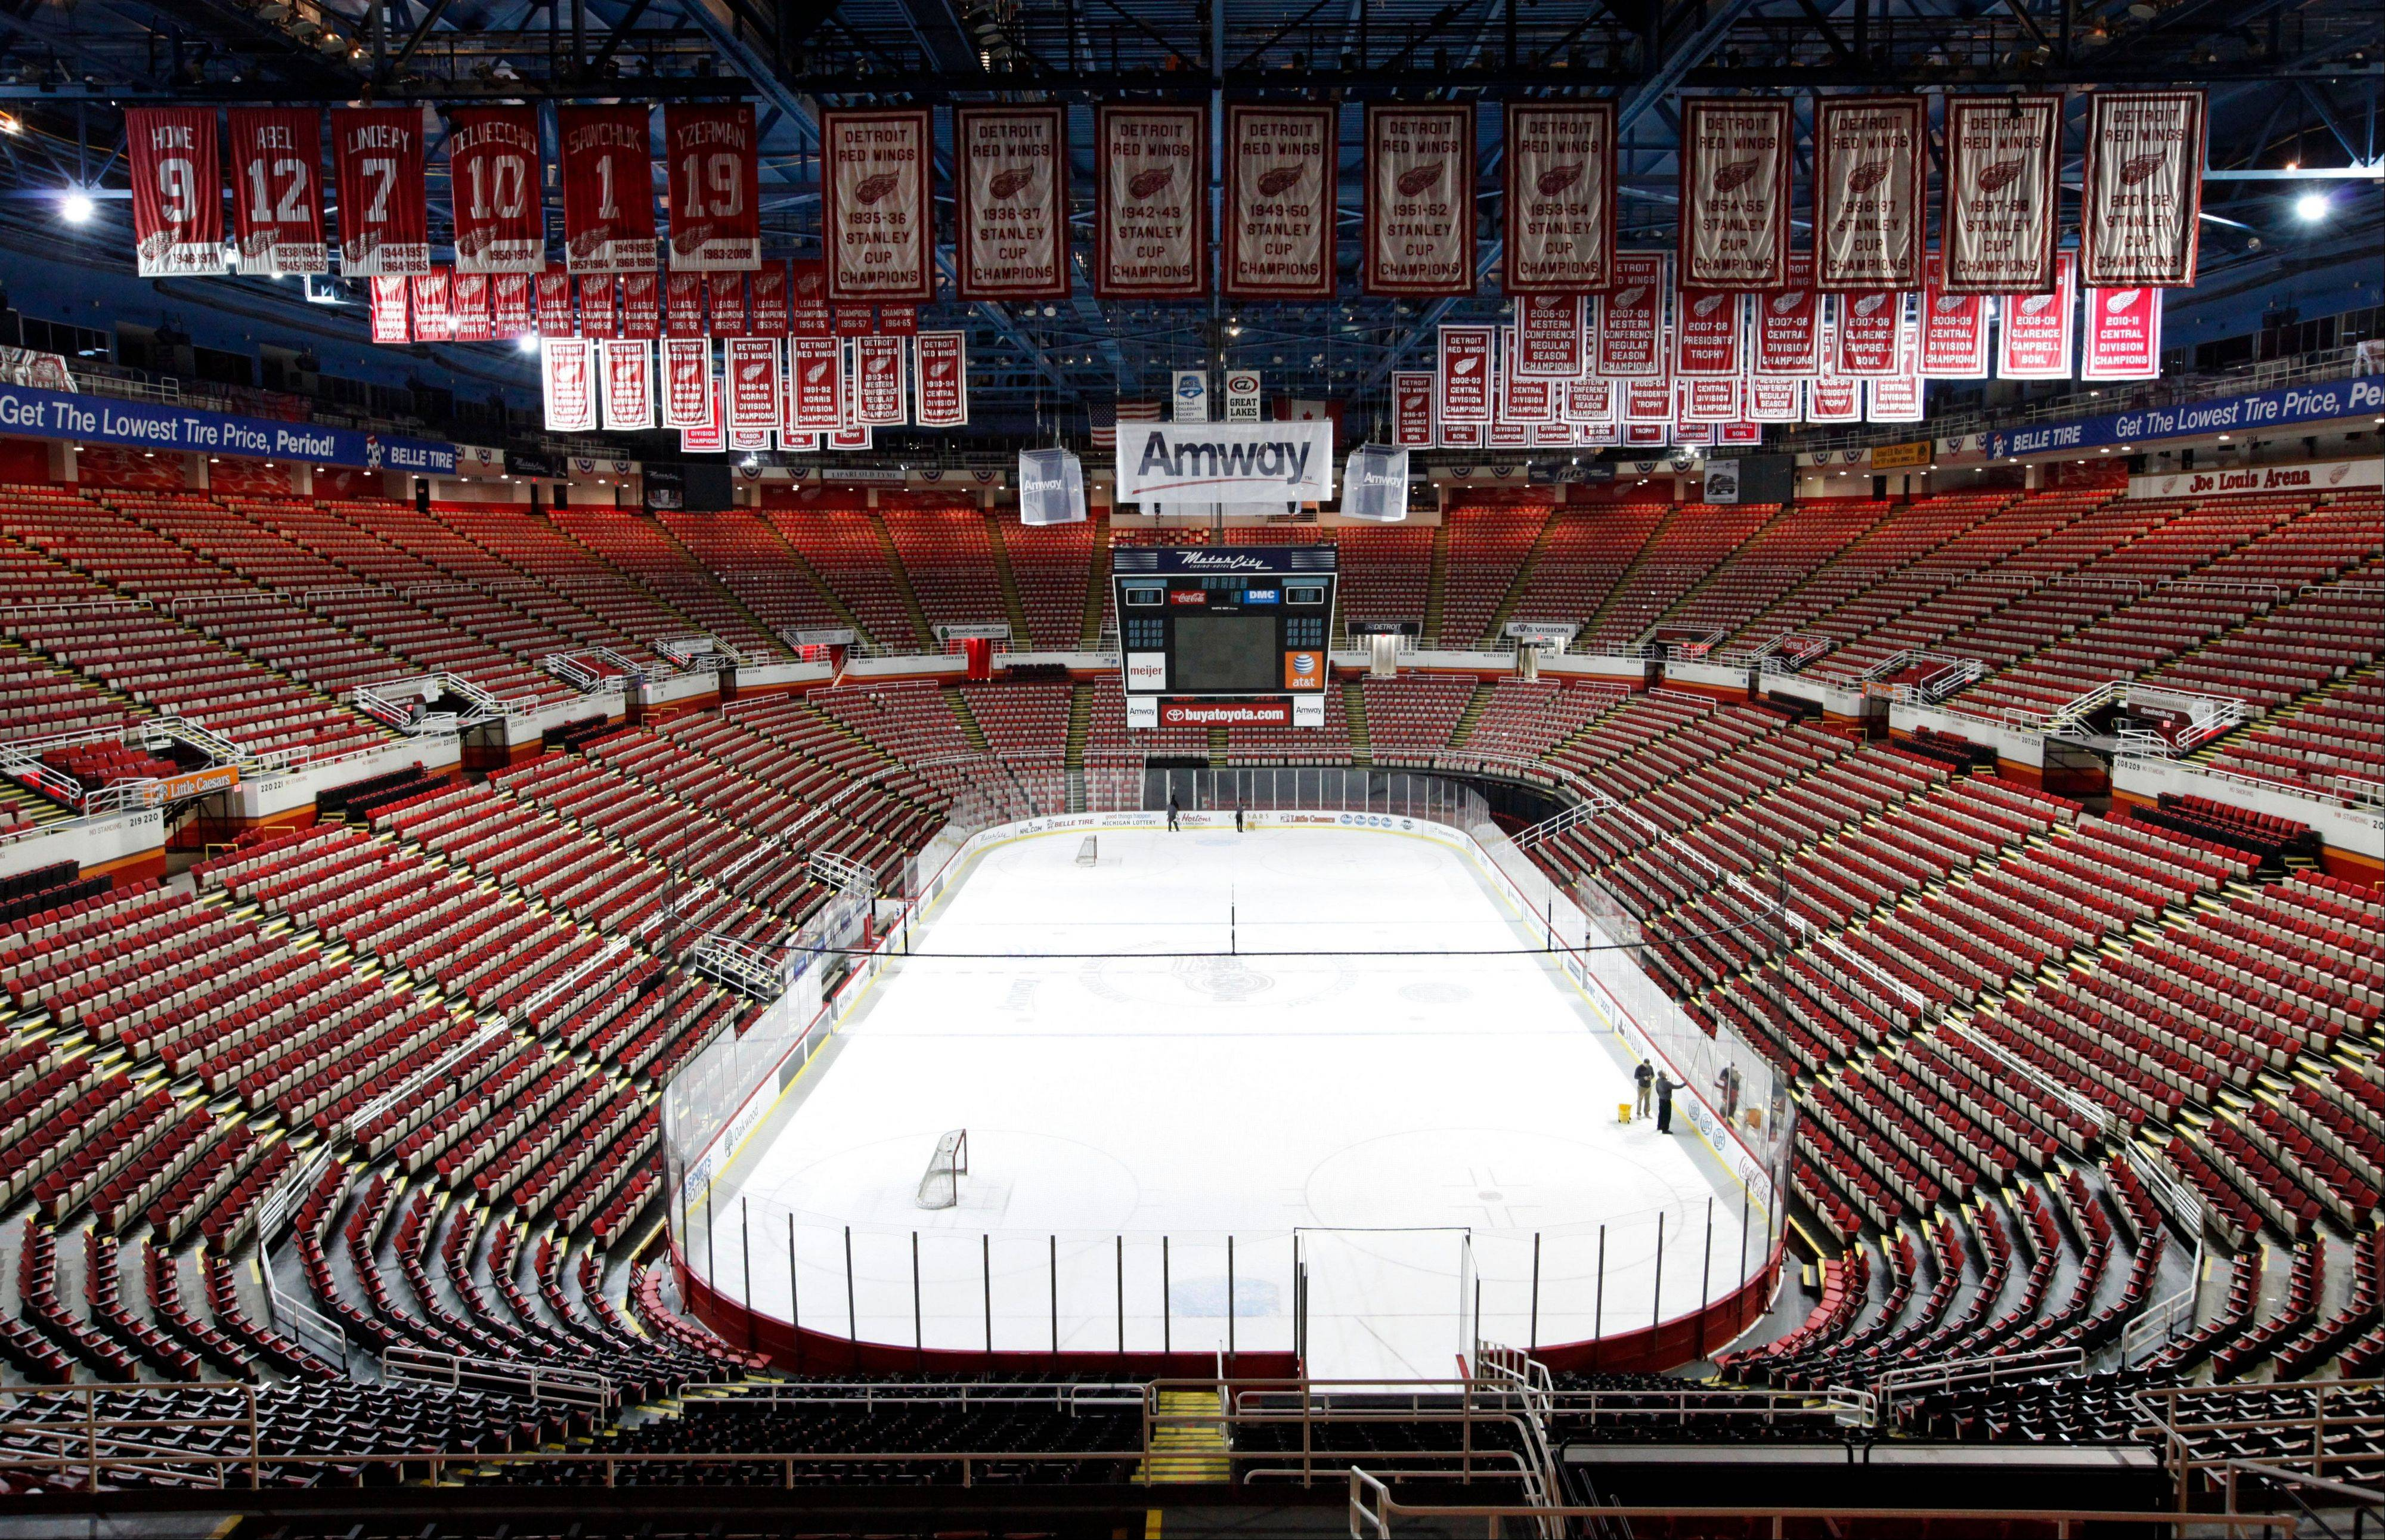 Championship banners and retired numbers of the Detroit Red Wings hockey team hang from the rafters above the ice at Joe Louis Arena in Detroit. The NHL lockout that's already wiped out the first three months of the season is taking its toll on small businesses in many of the NHL's markets.